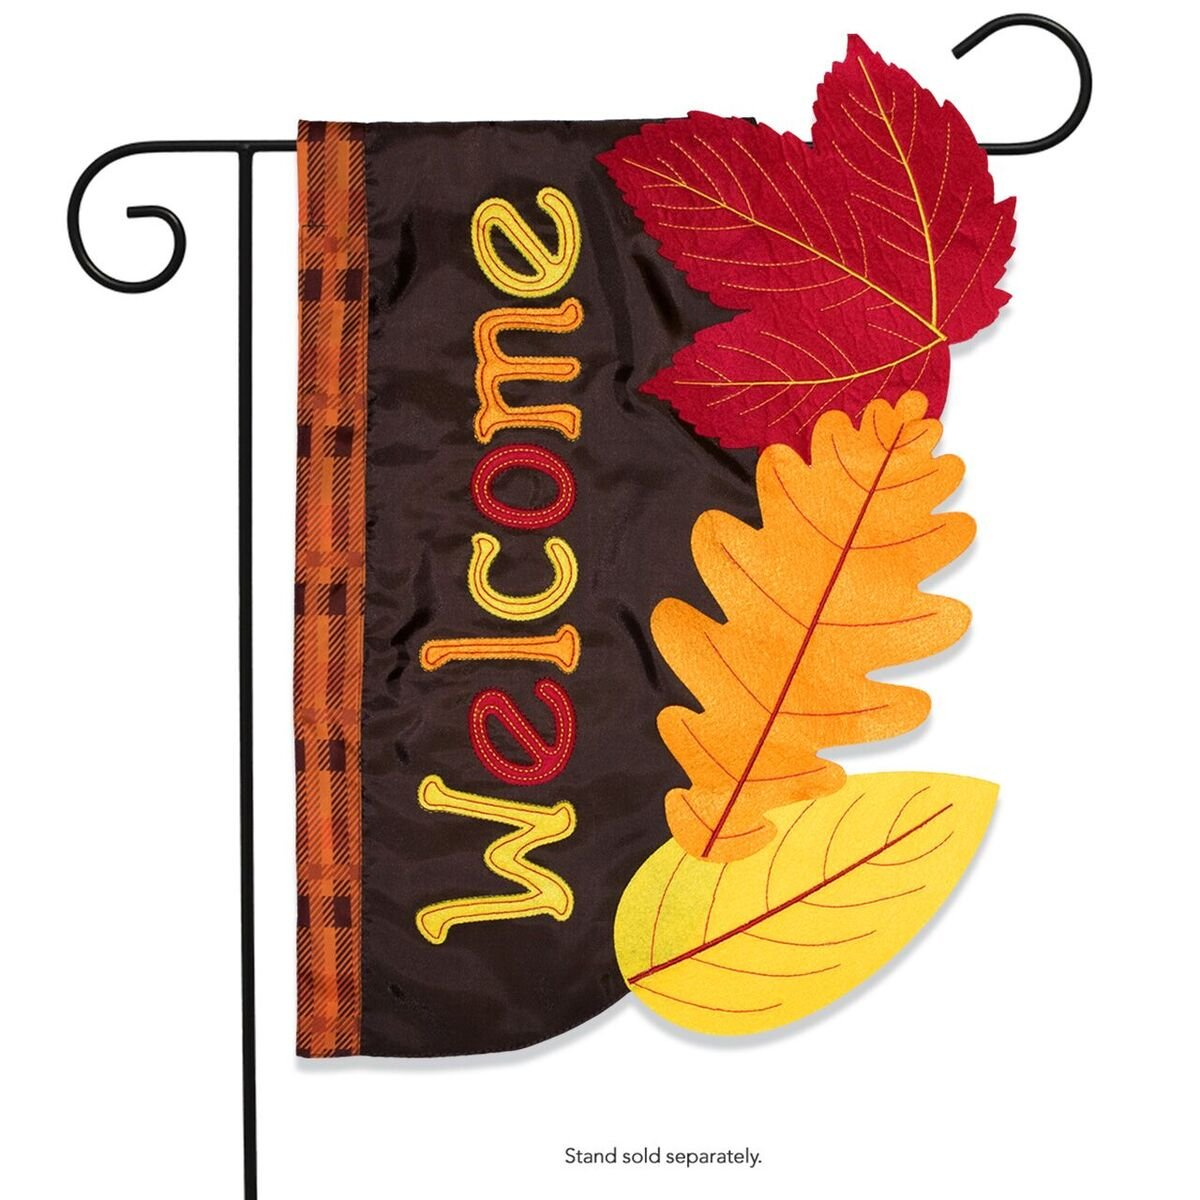 Briarwood Lane Fall Leaves Applique Garden Flag Autumn Colored Leaf 12.5'' x 18'' by Briarwood Lane (Image #1)